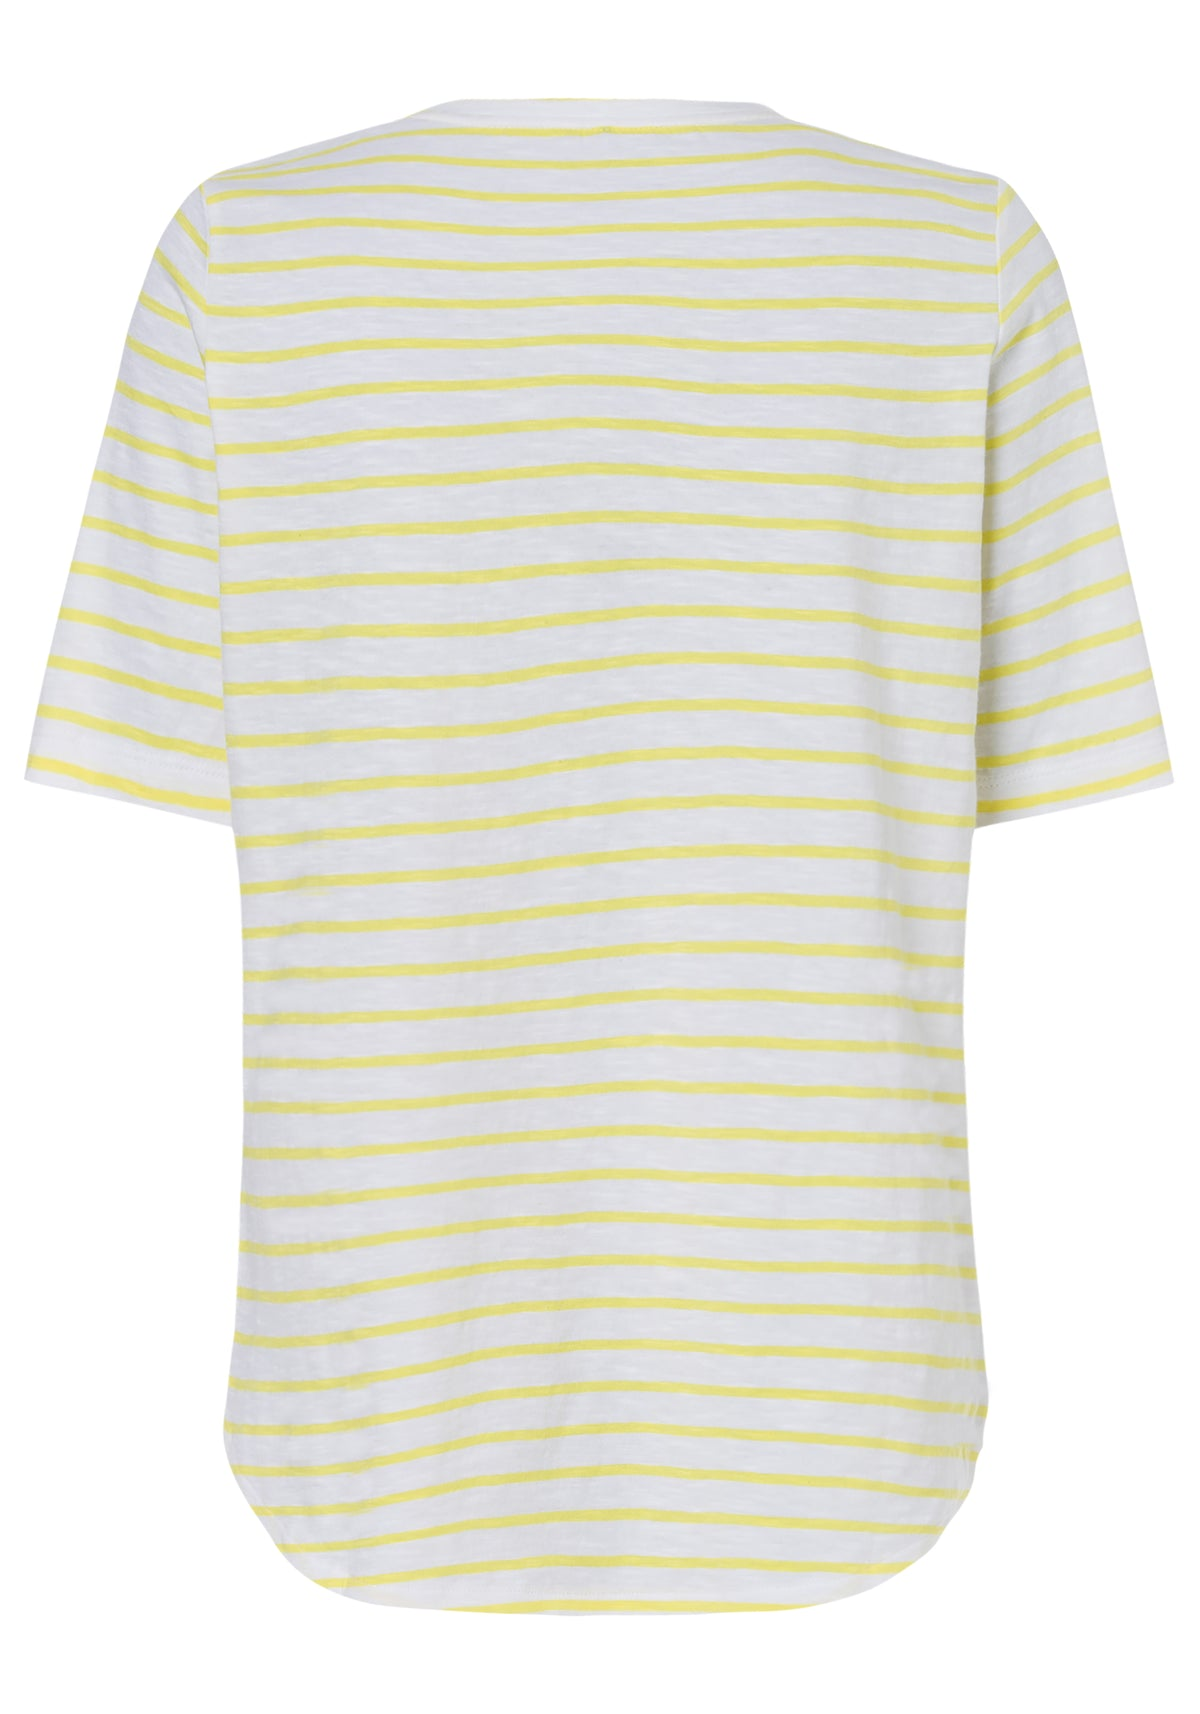 100% Cotton Rounded Hem Stripe T-Shirt with Tropical Overprint & Embroidery